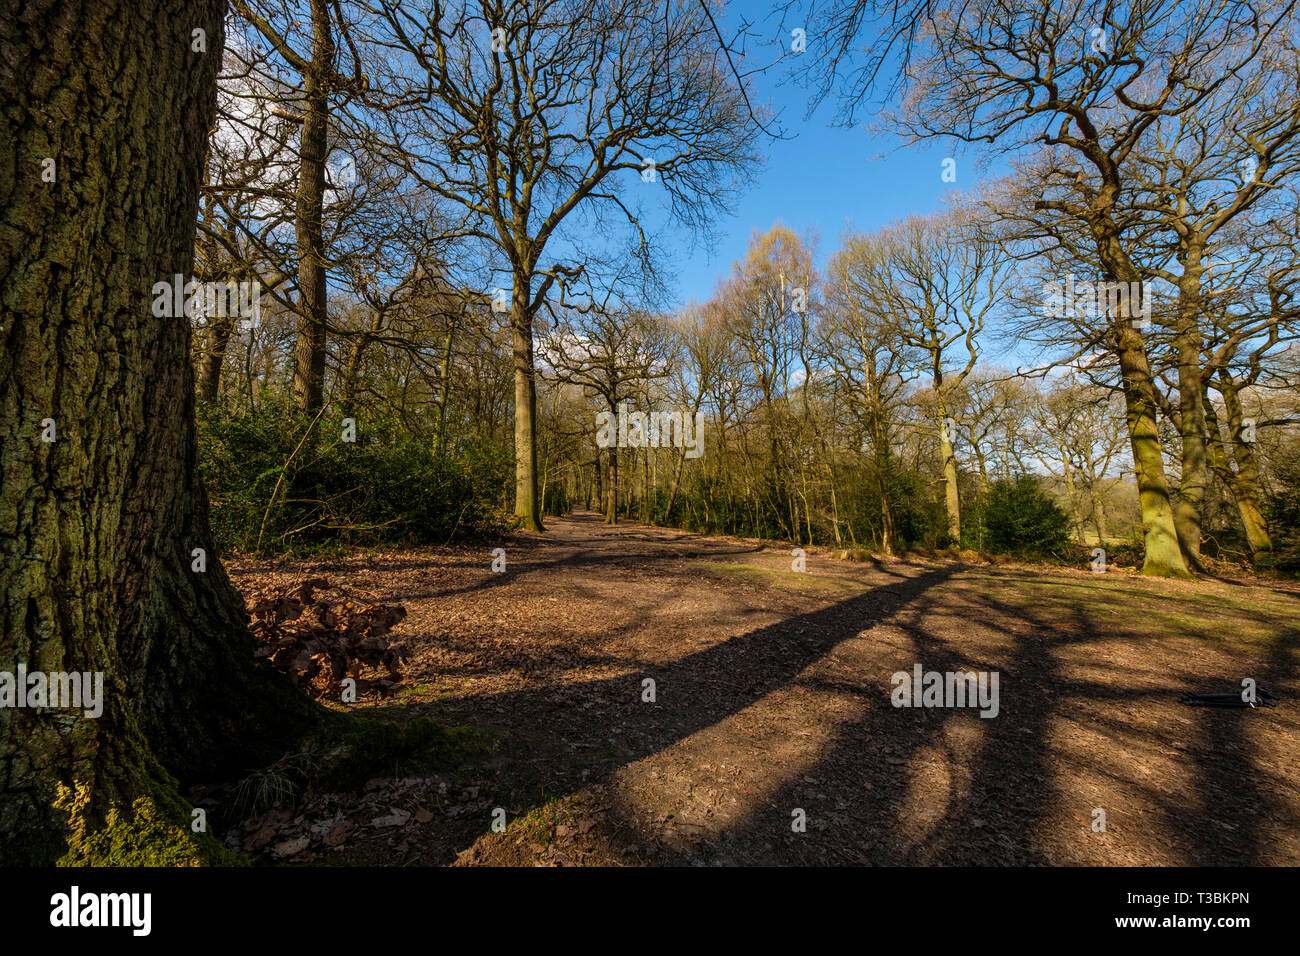 Swithland wood is the  most important site  of ancient woodland for nature conservation in Leicestershire and a Site of Special Scientific Interest. - Stock Image